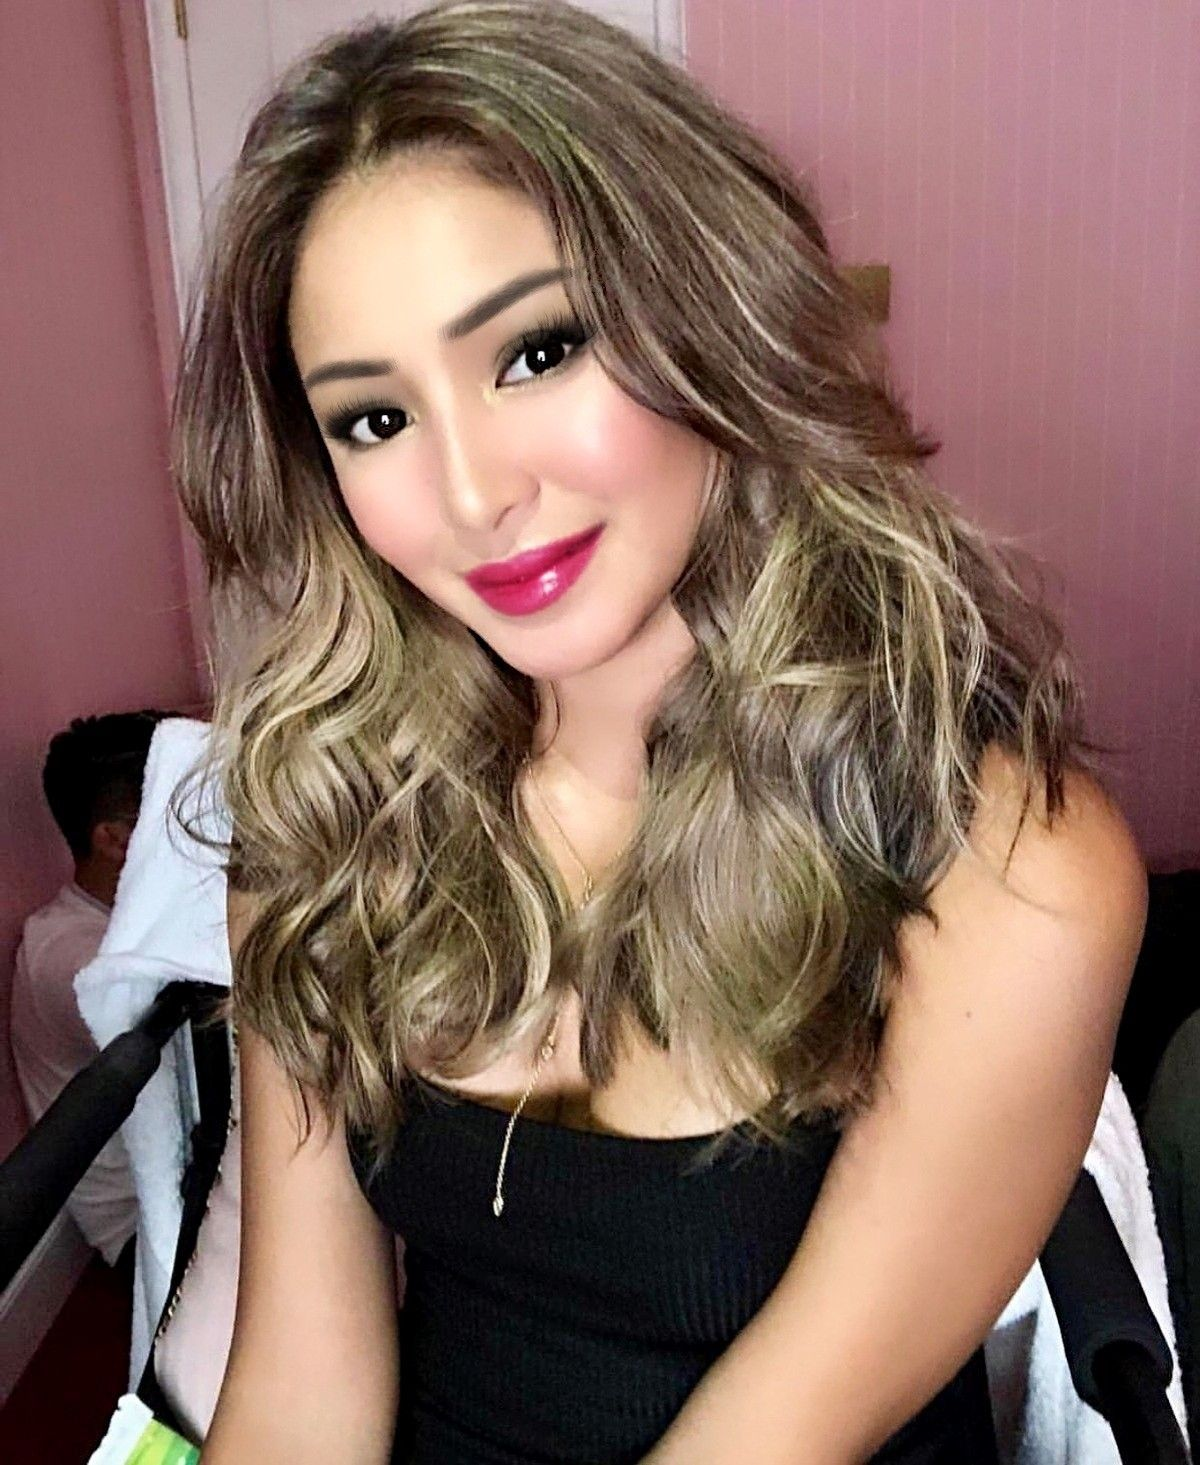 Filipino Celebrities Hair Color In 2020 Kathryn Bernardo Hairstyle Celebrity Hair Colors Celebrity Hair Color Brunette